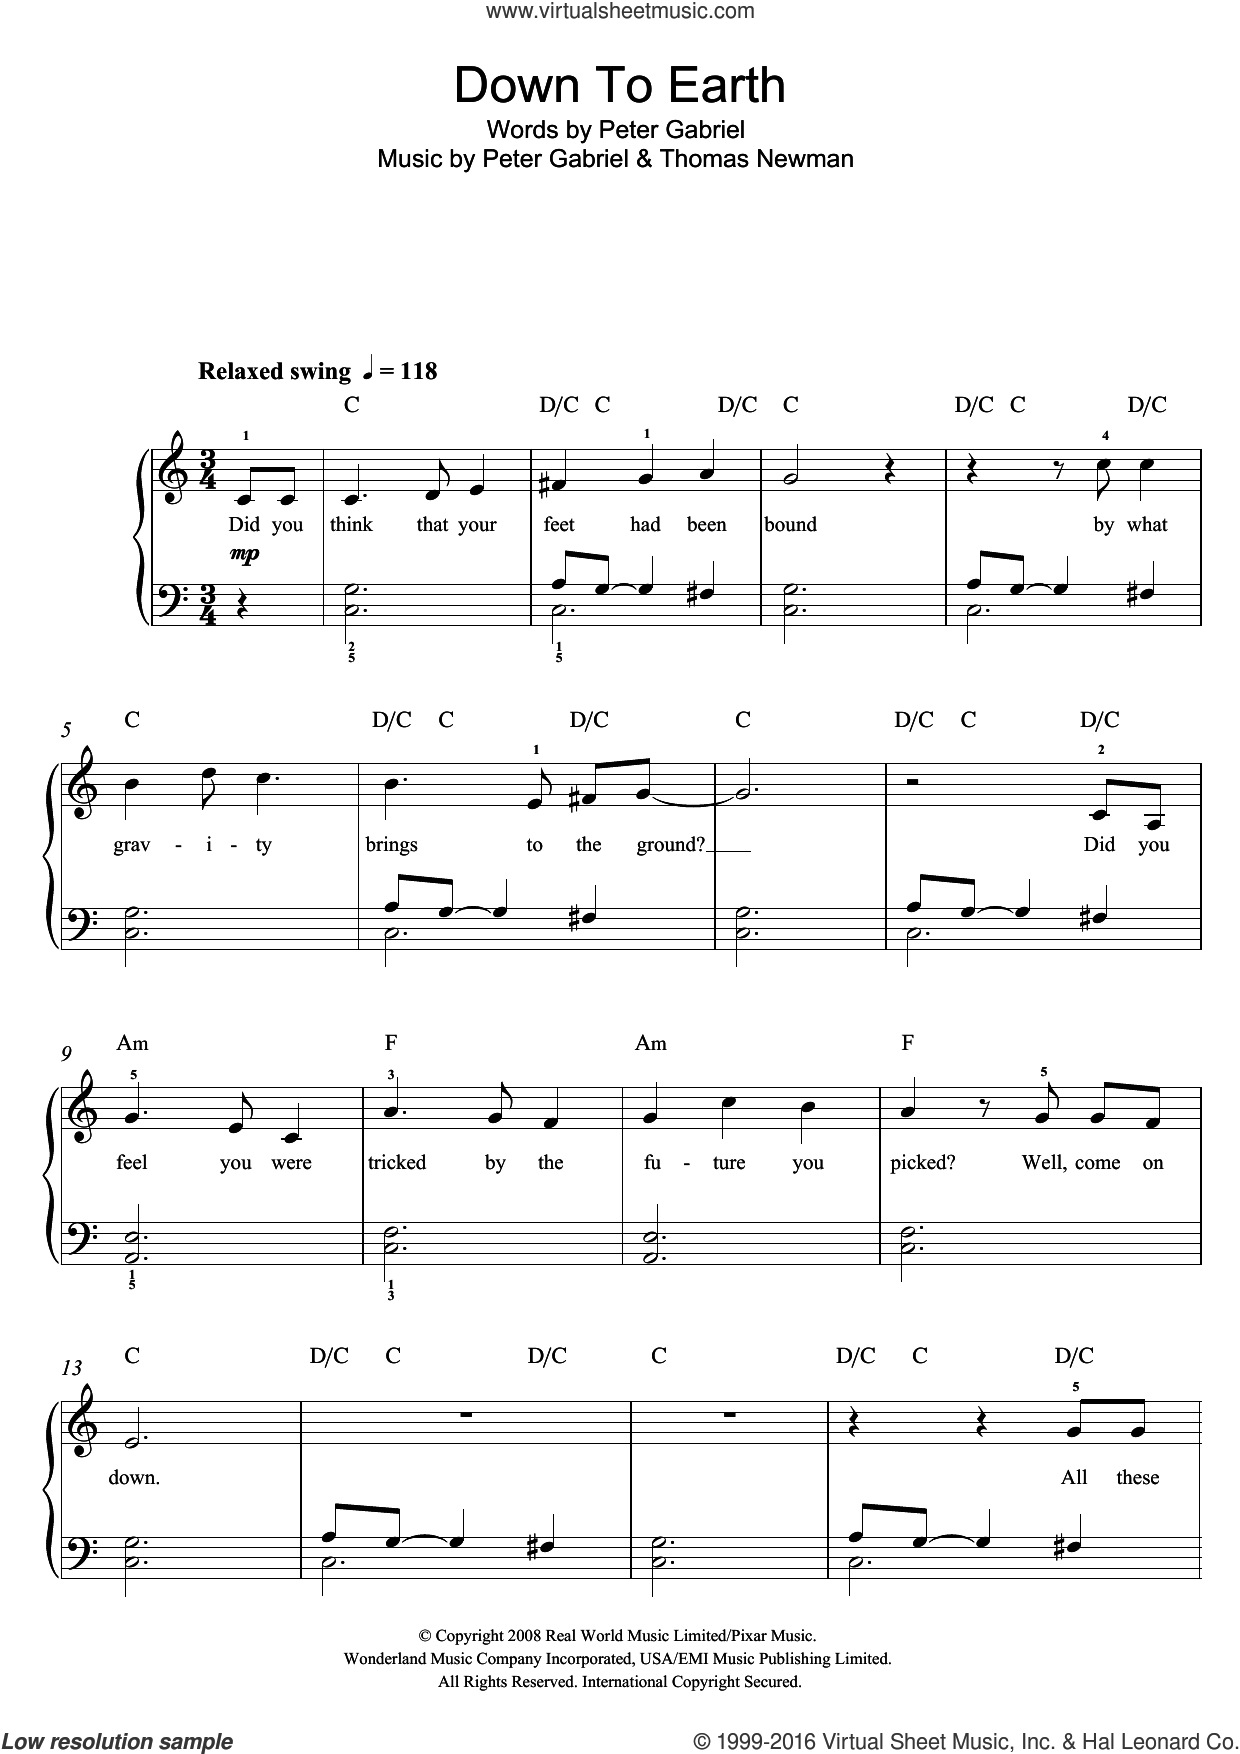 Down To Earth (from WALL-E) sheet music for voice, piano or guitar by Peter Gabriel and Thomas Newman, intermediate skill level